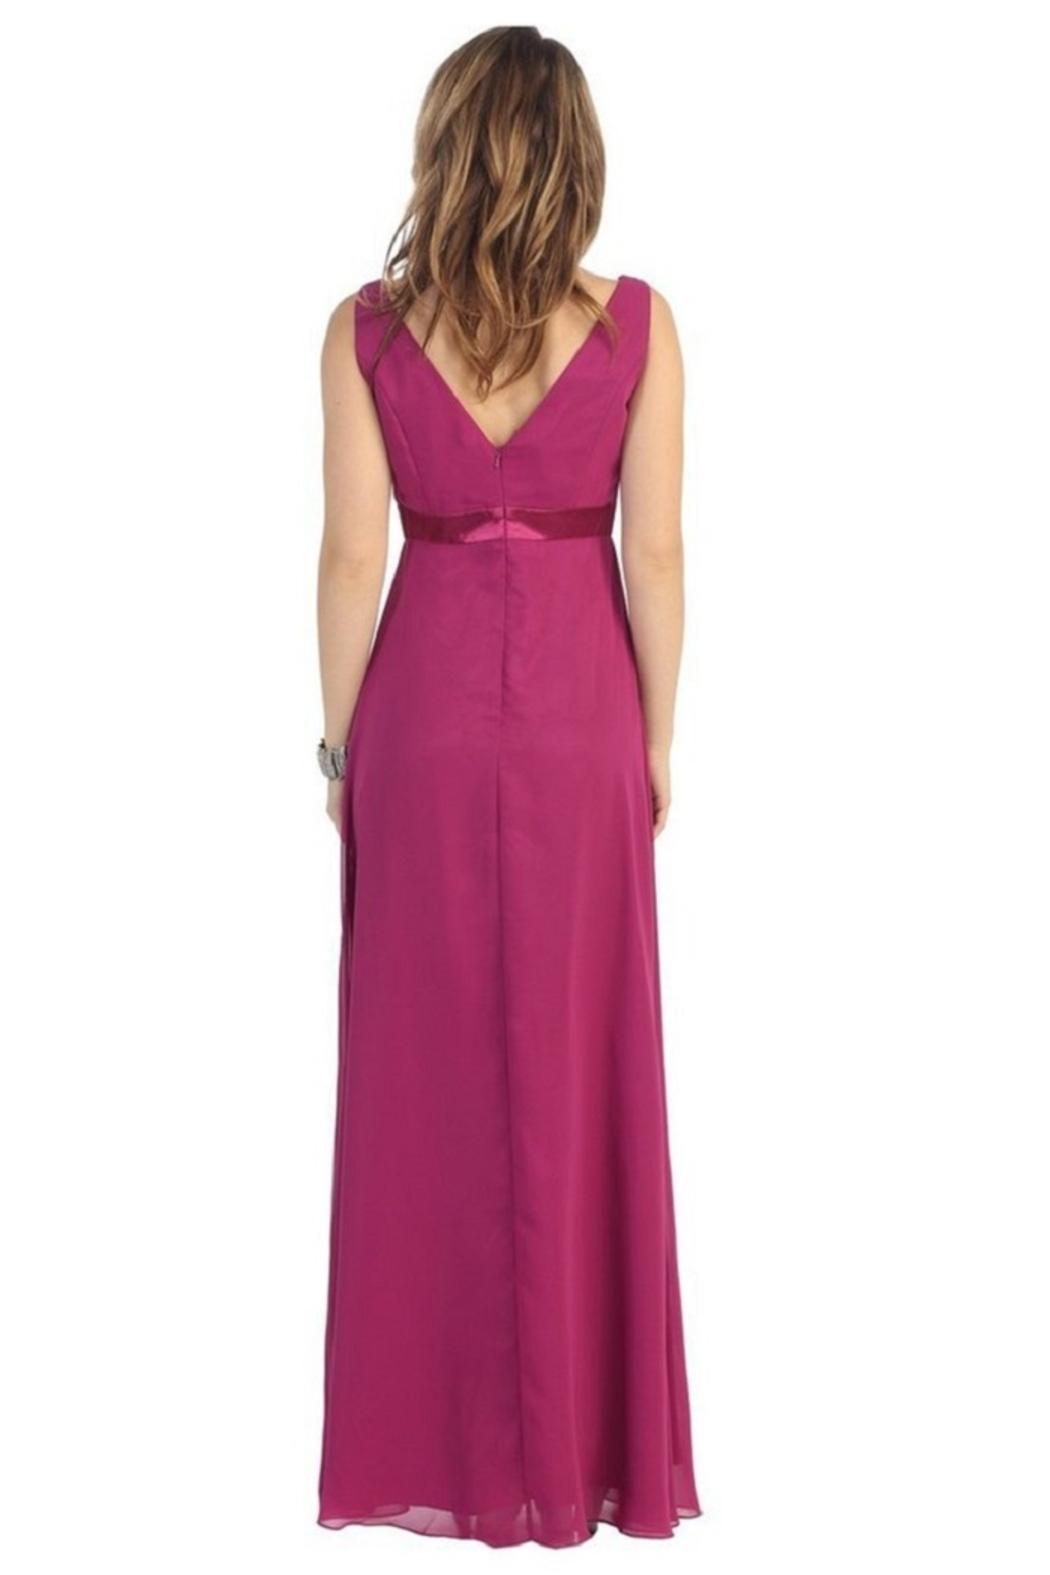 May Queen  Burgundy Chiffon Formal Long Dress - Front Full Image